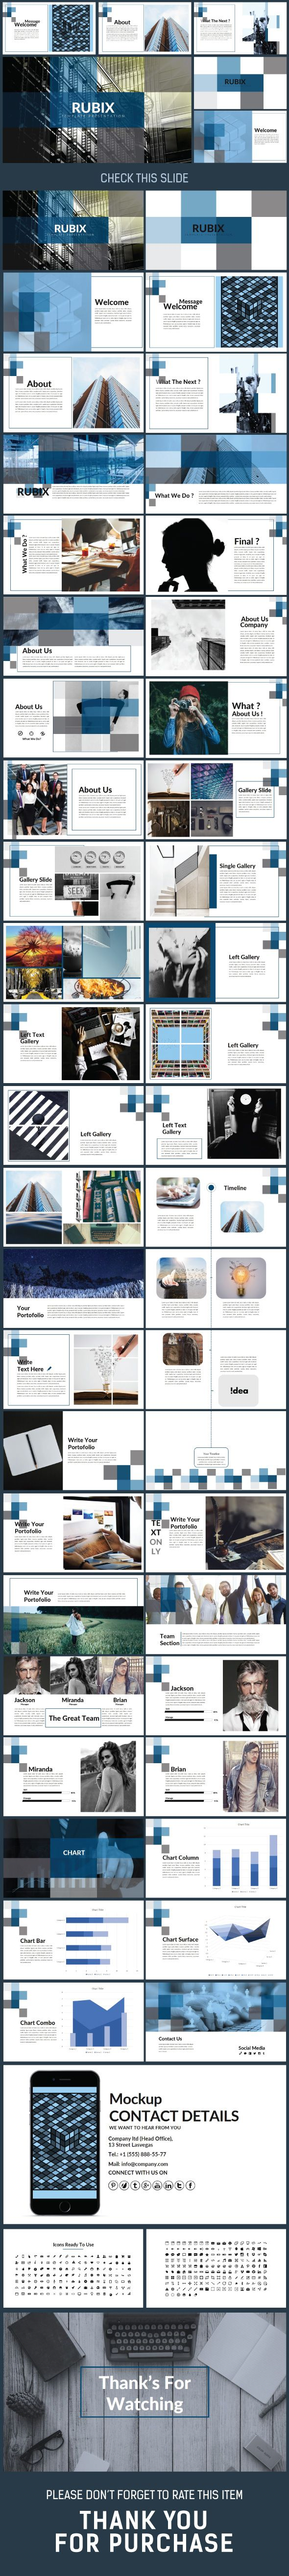 RUBIX Presentation Power Point Template - Creative PowerPoint Templates